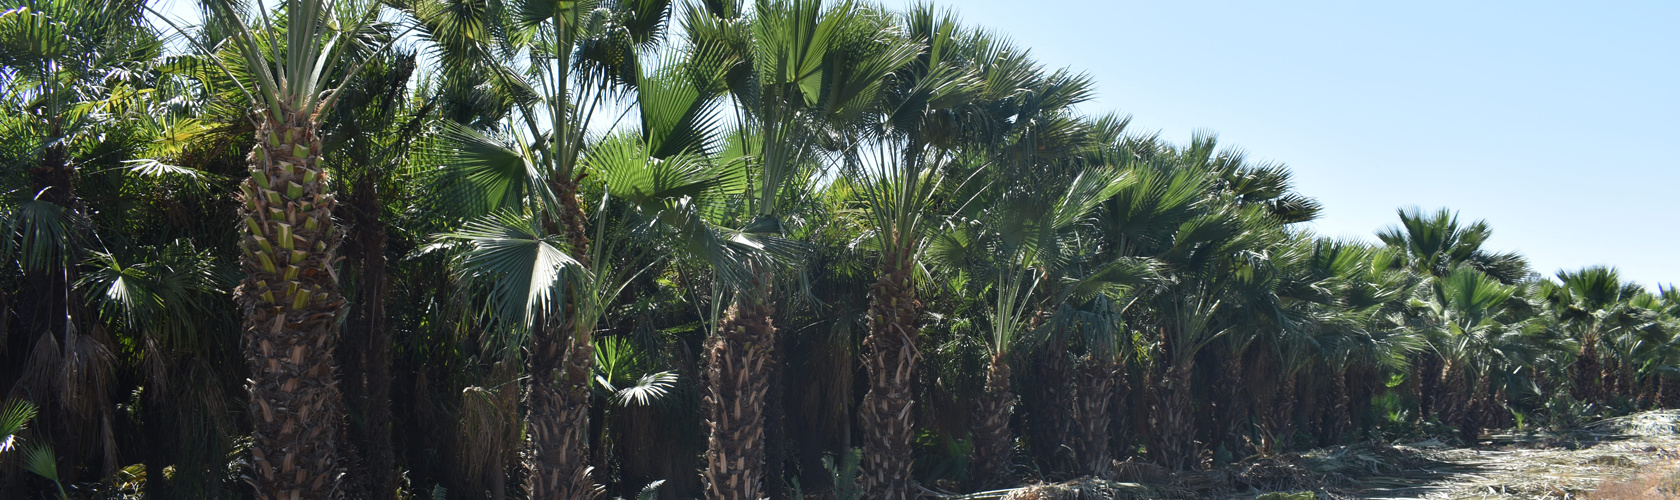 Row of Guadalupe palms at Madera grove